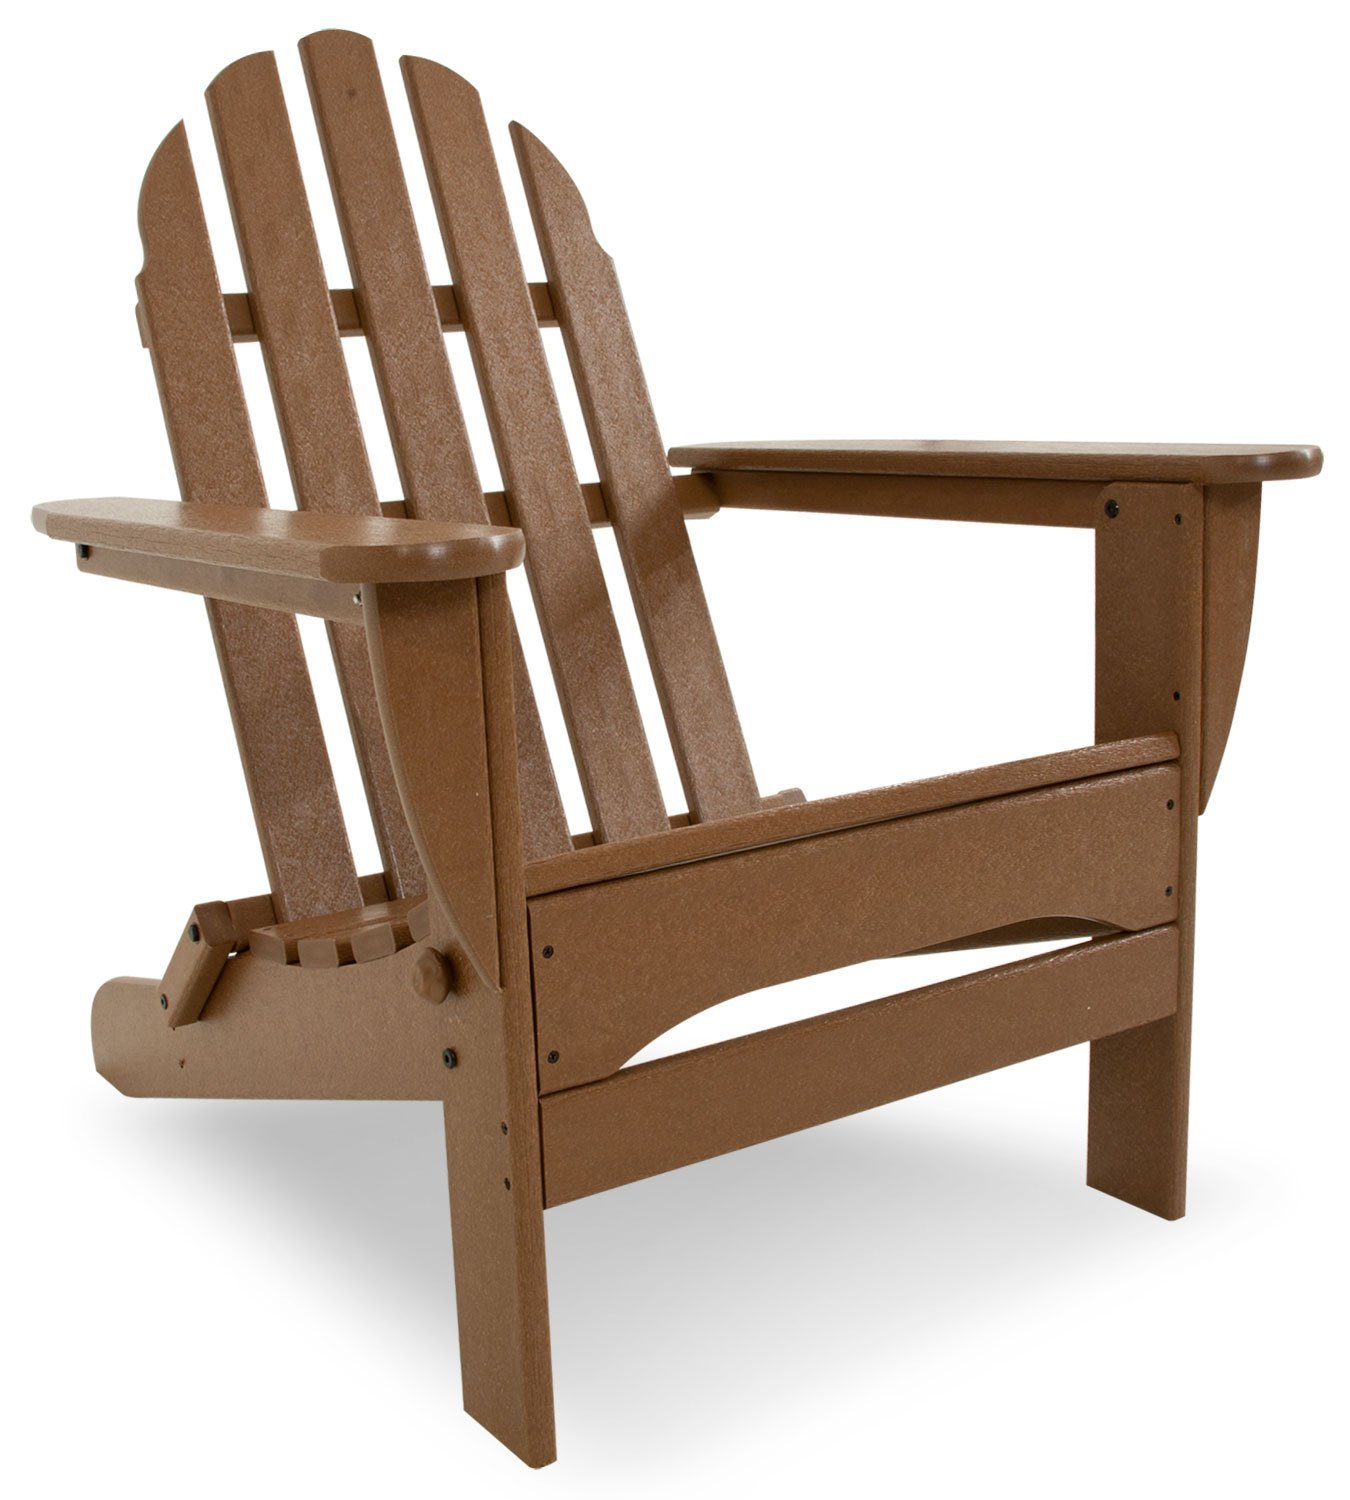 teak adirondack chairs in dark brown with arm for outdoor furniture ideas